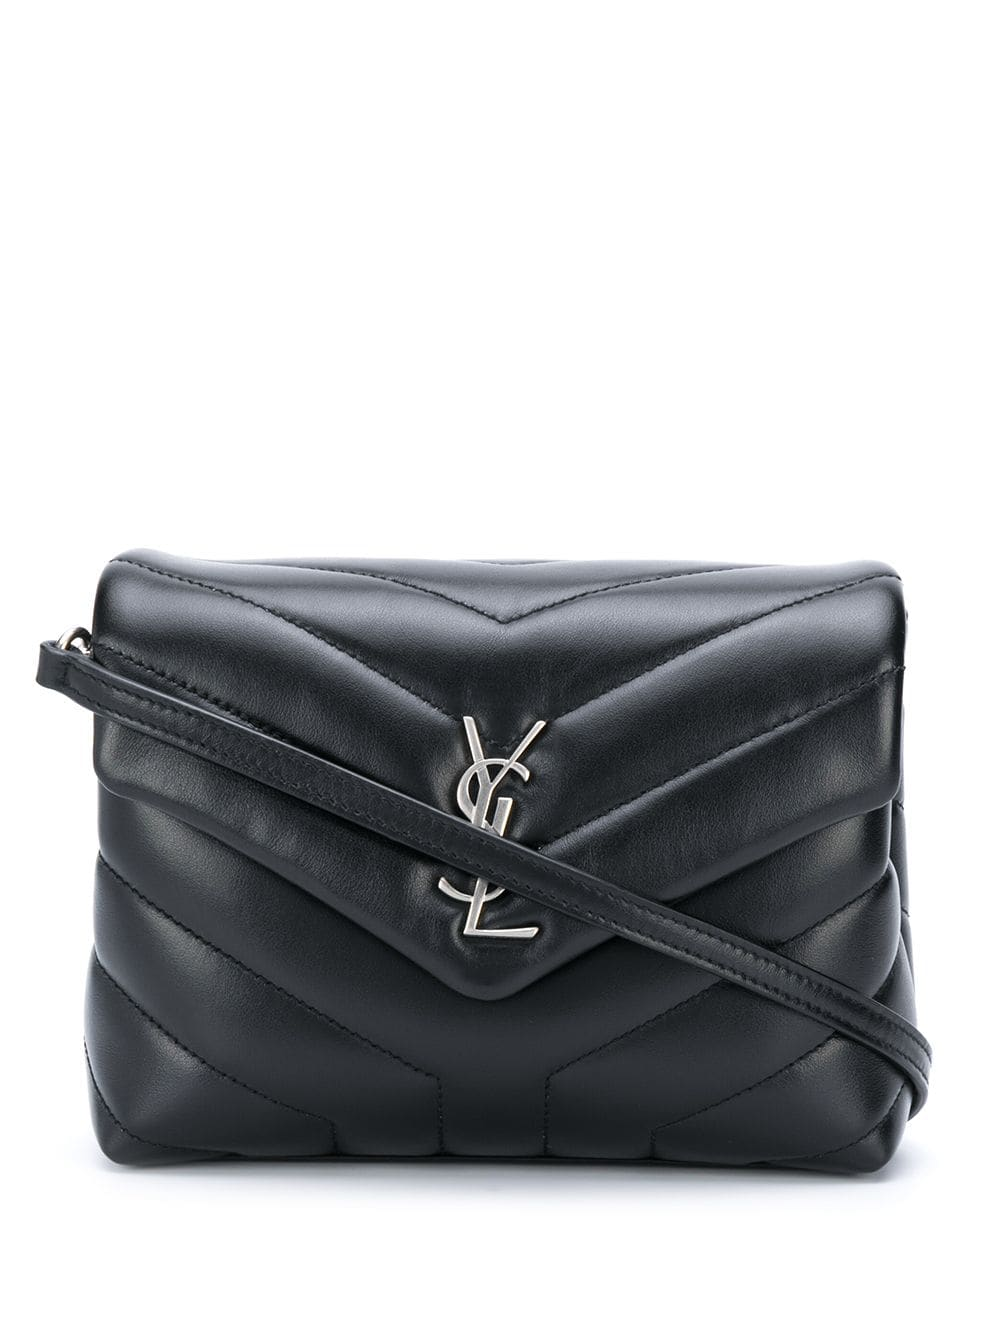 Loulou Toy Leather Mini Bag